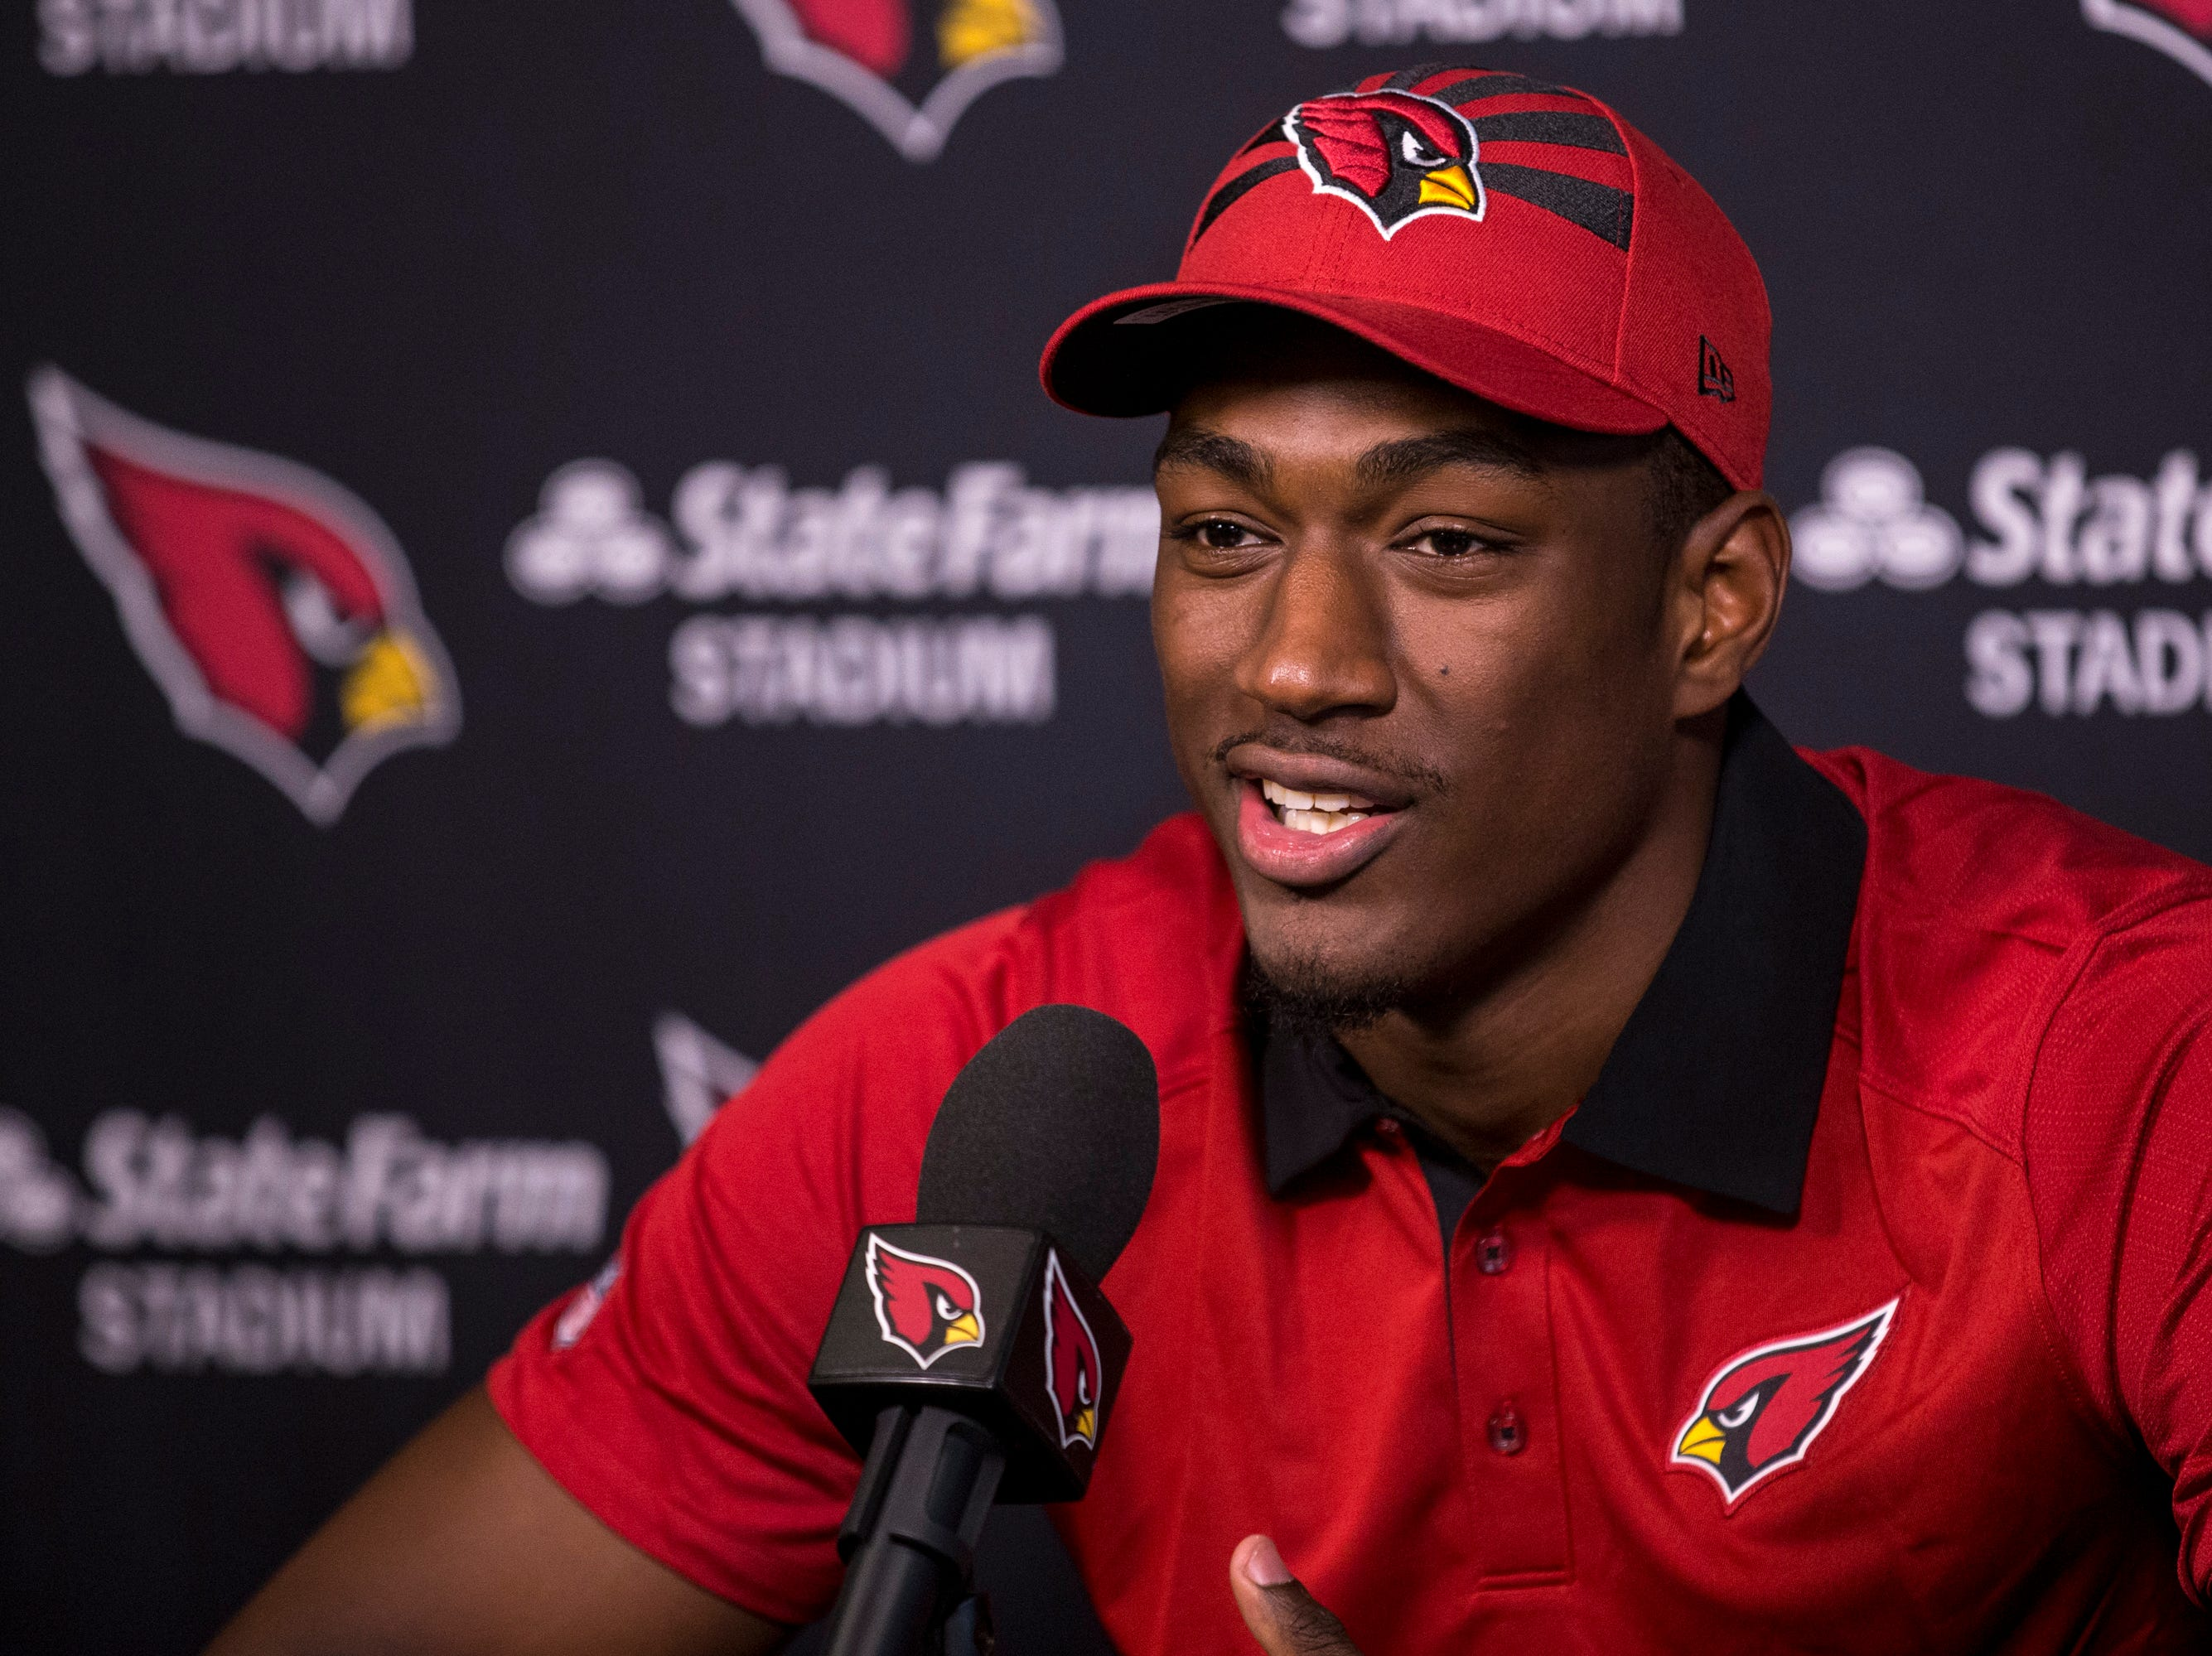 Cardinals wide receiver Hakeem Butler speaks during a press conference on Thursday, May 9, 2019, in Tempe, Ariz.